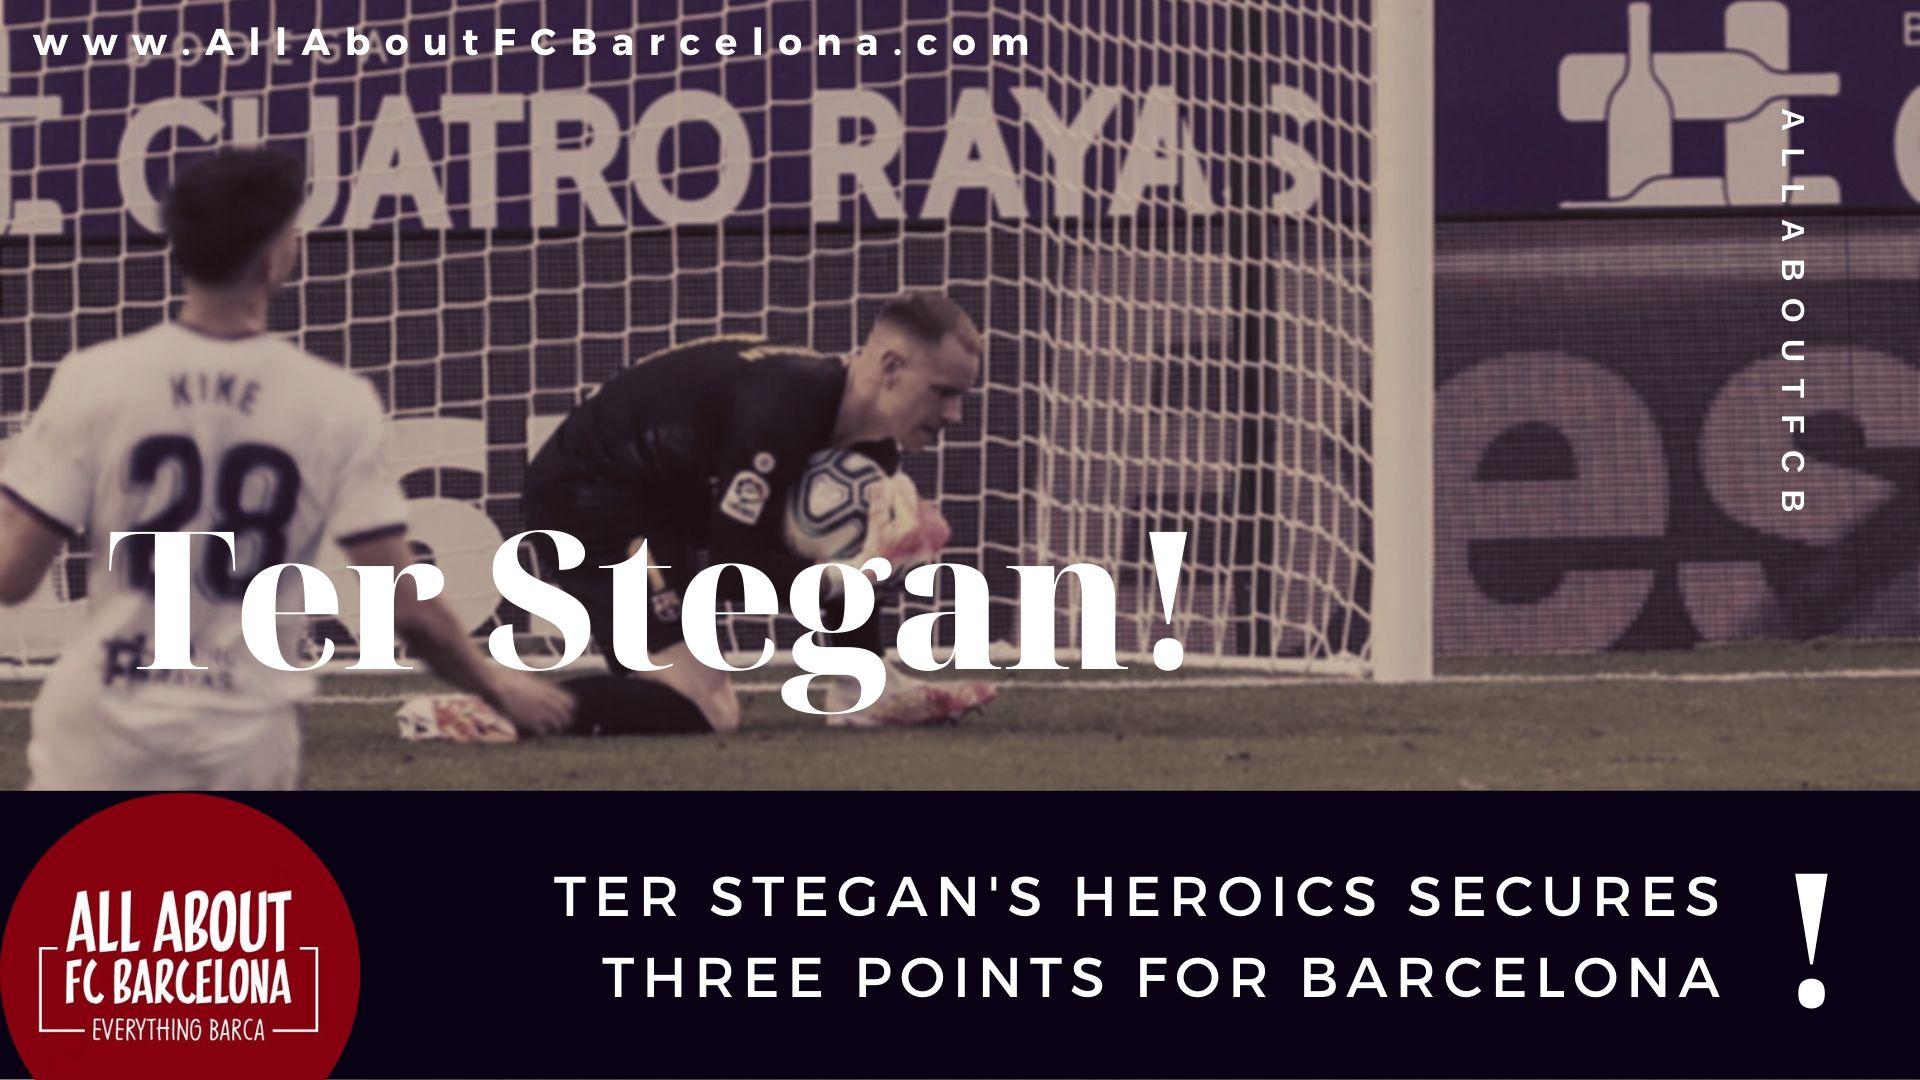 Ter Stegan was instrumental for Barcelona against Real Valladolid